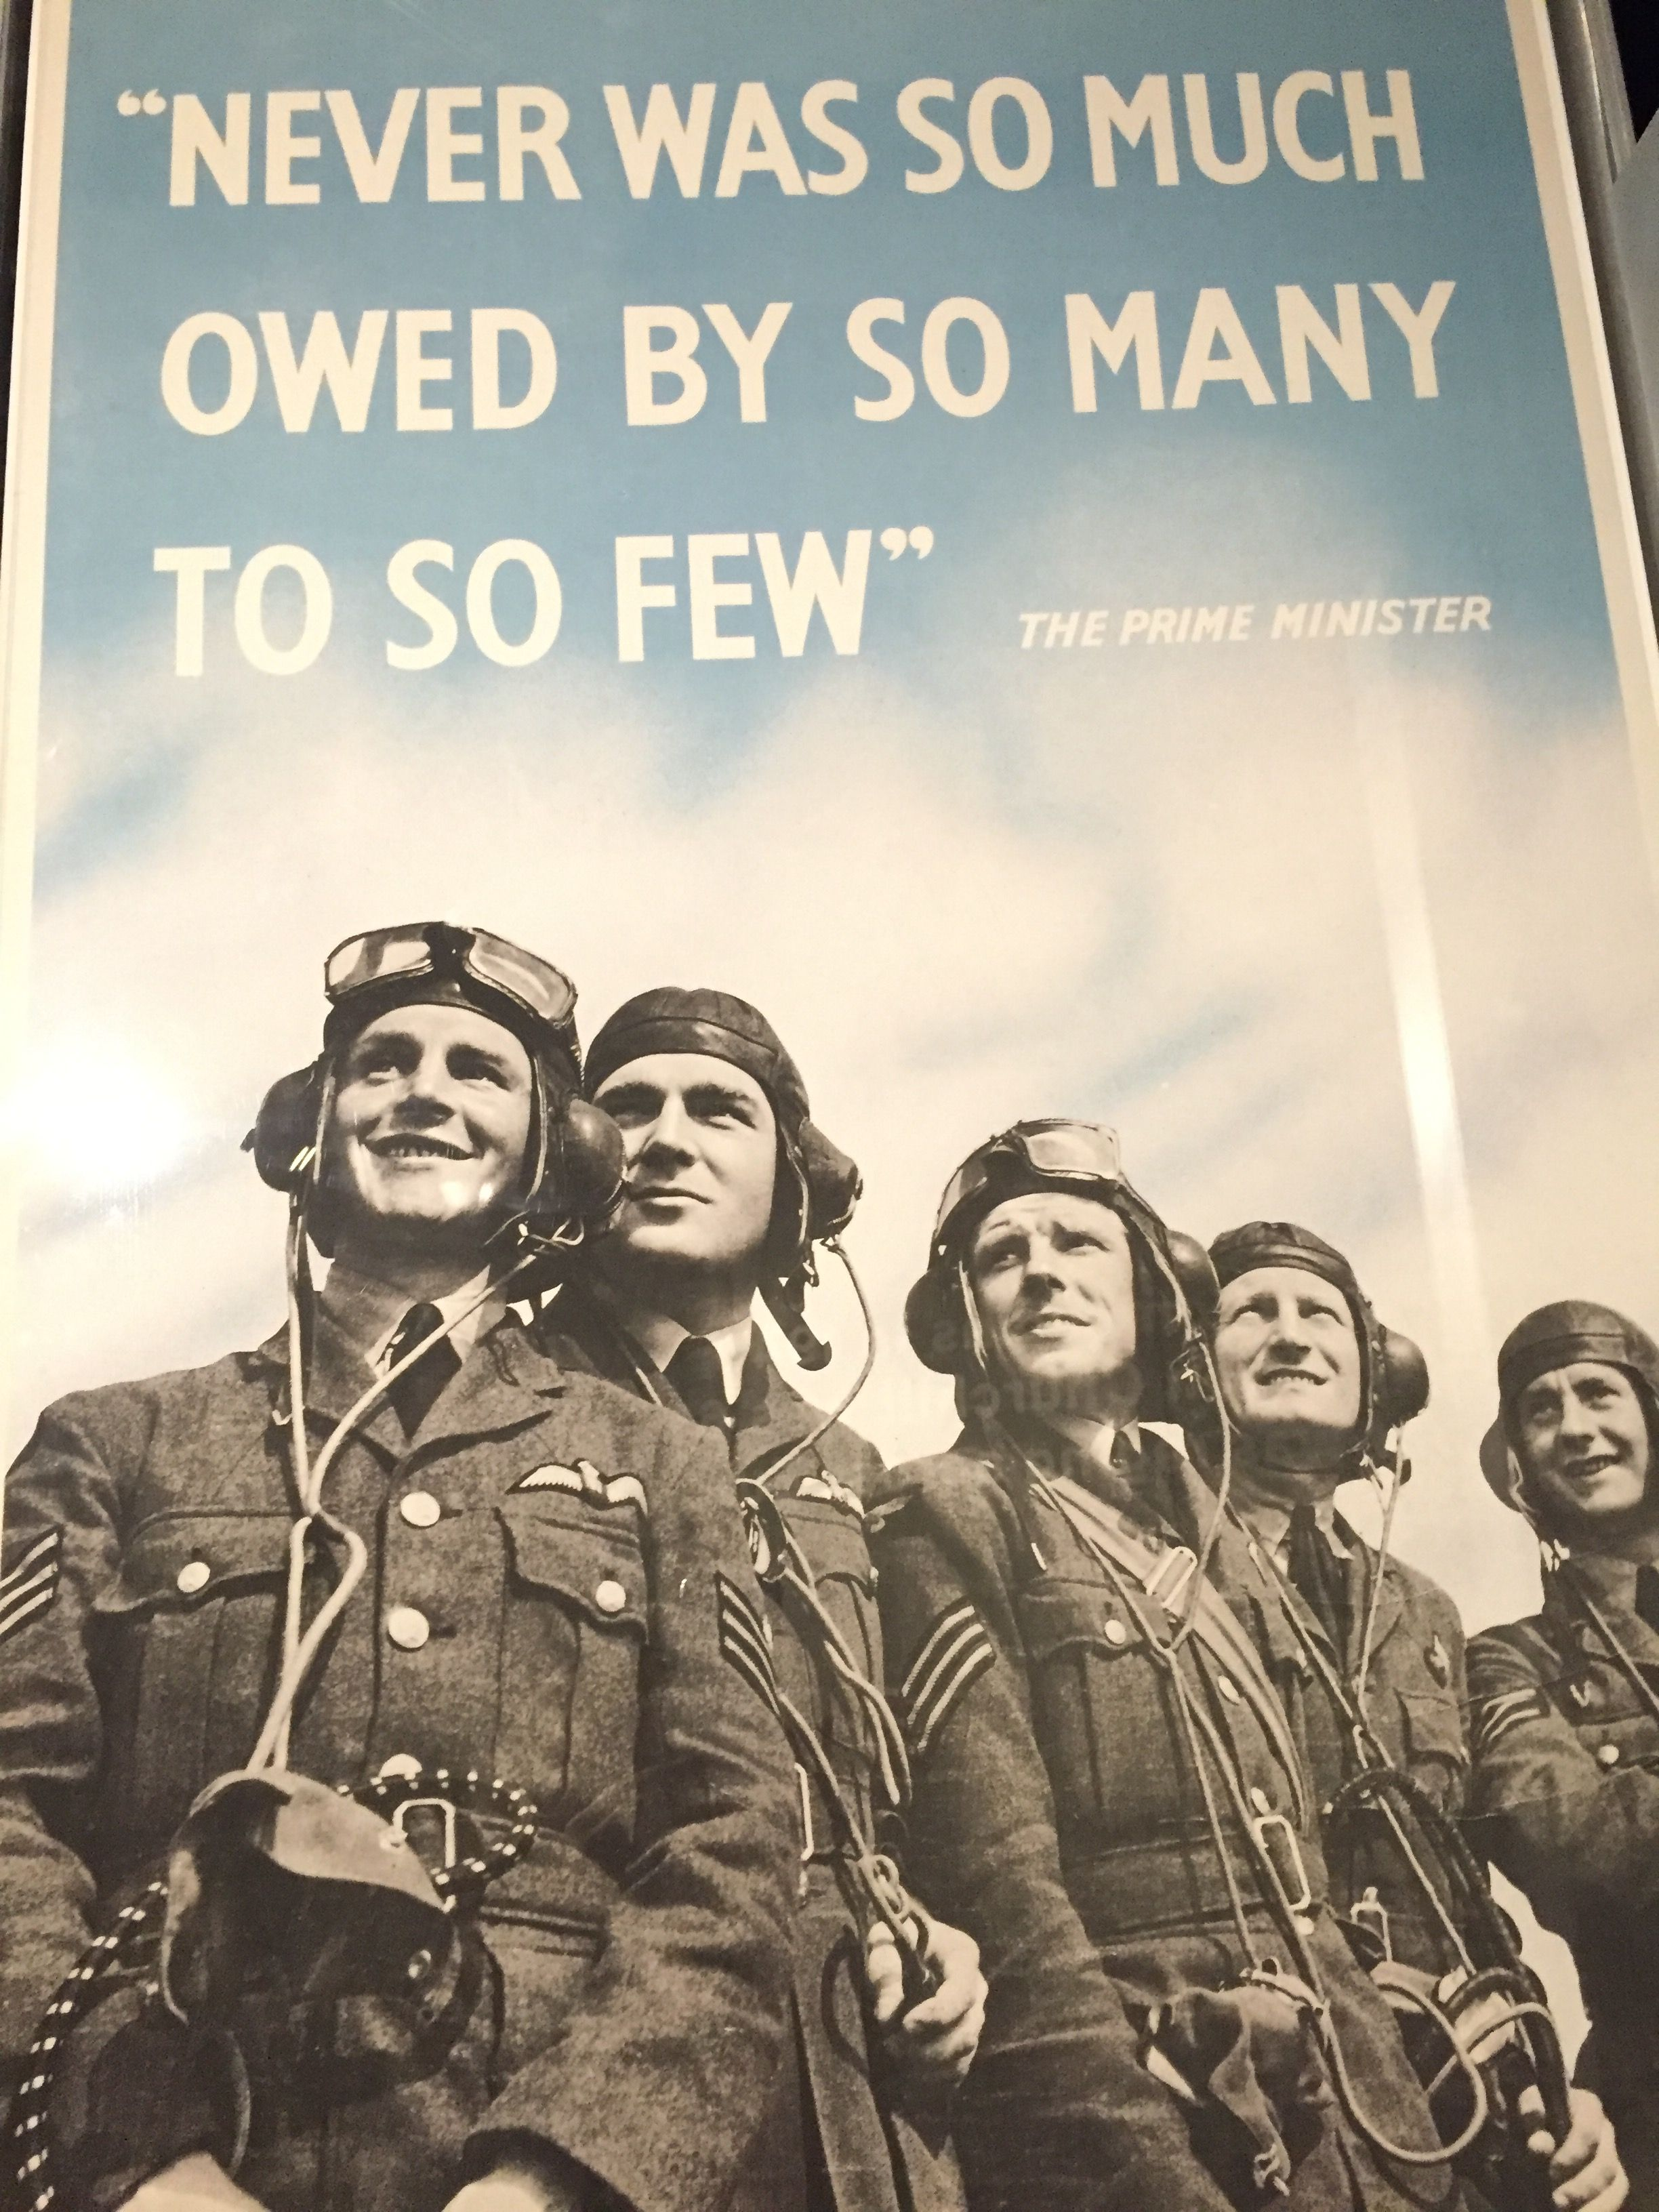 Pin by Jeanne Galvin on WWII Movies, Movie posters, Poster